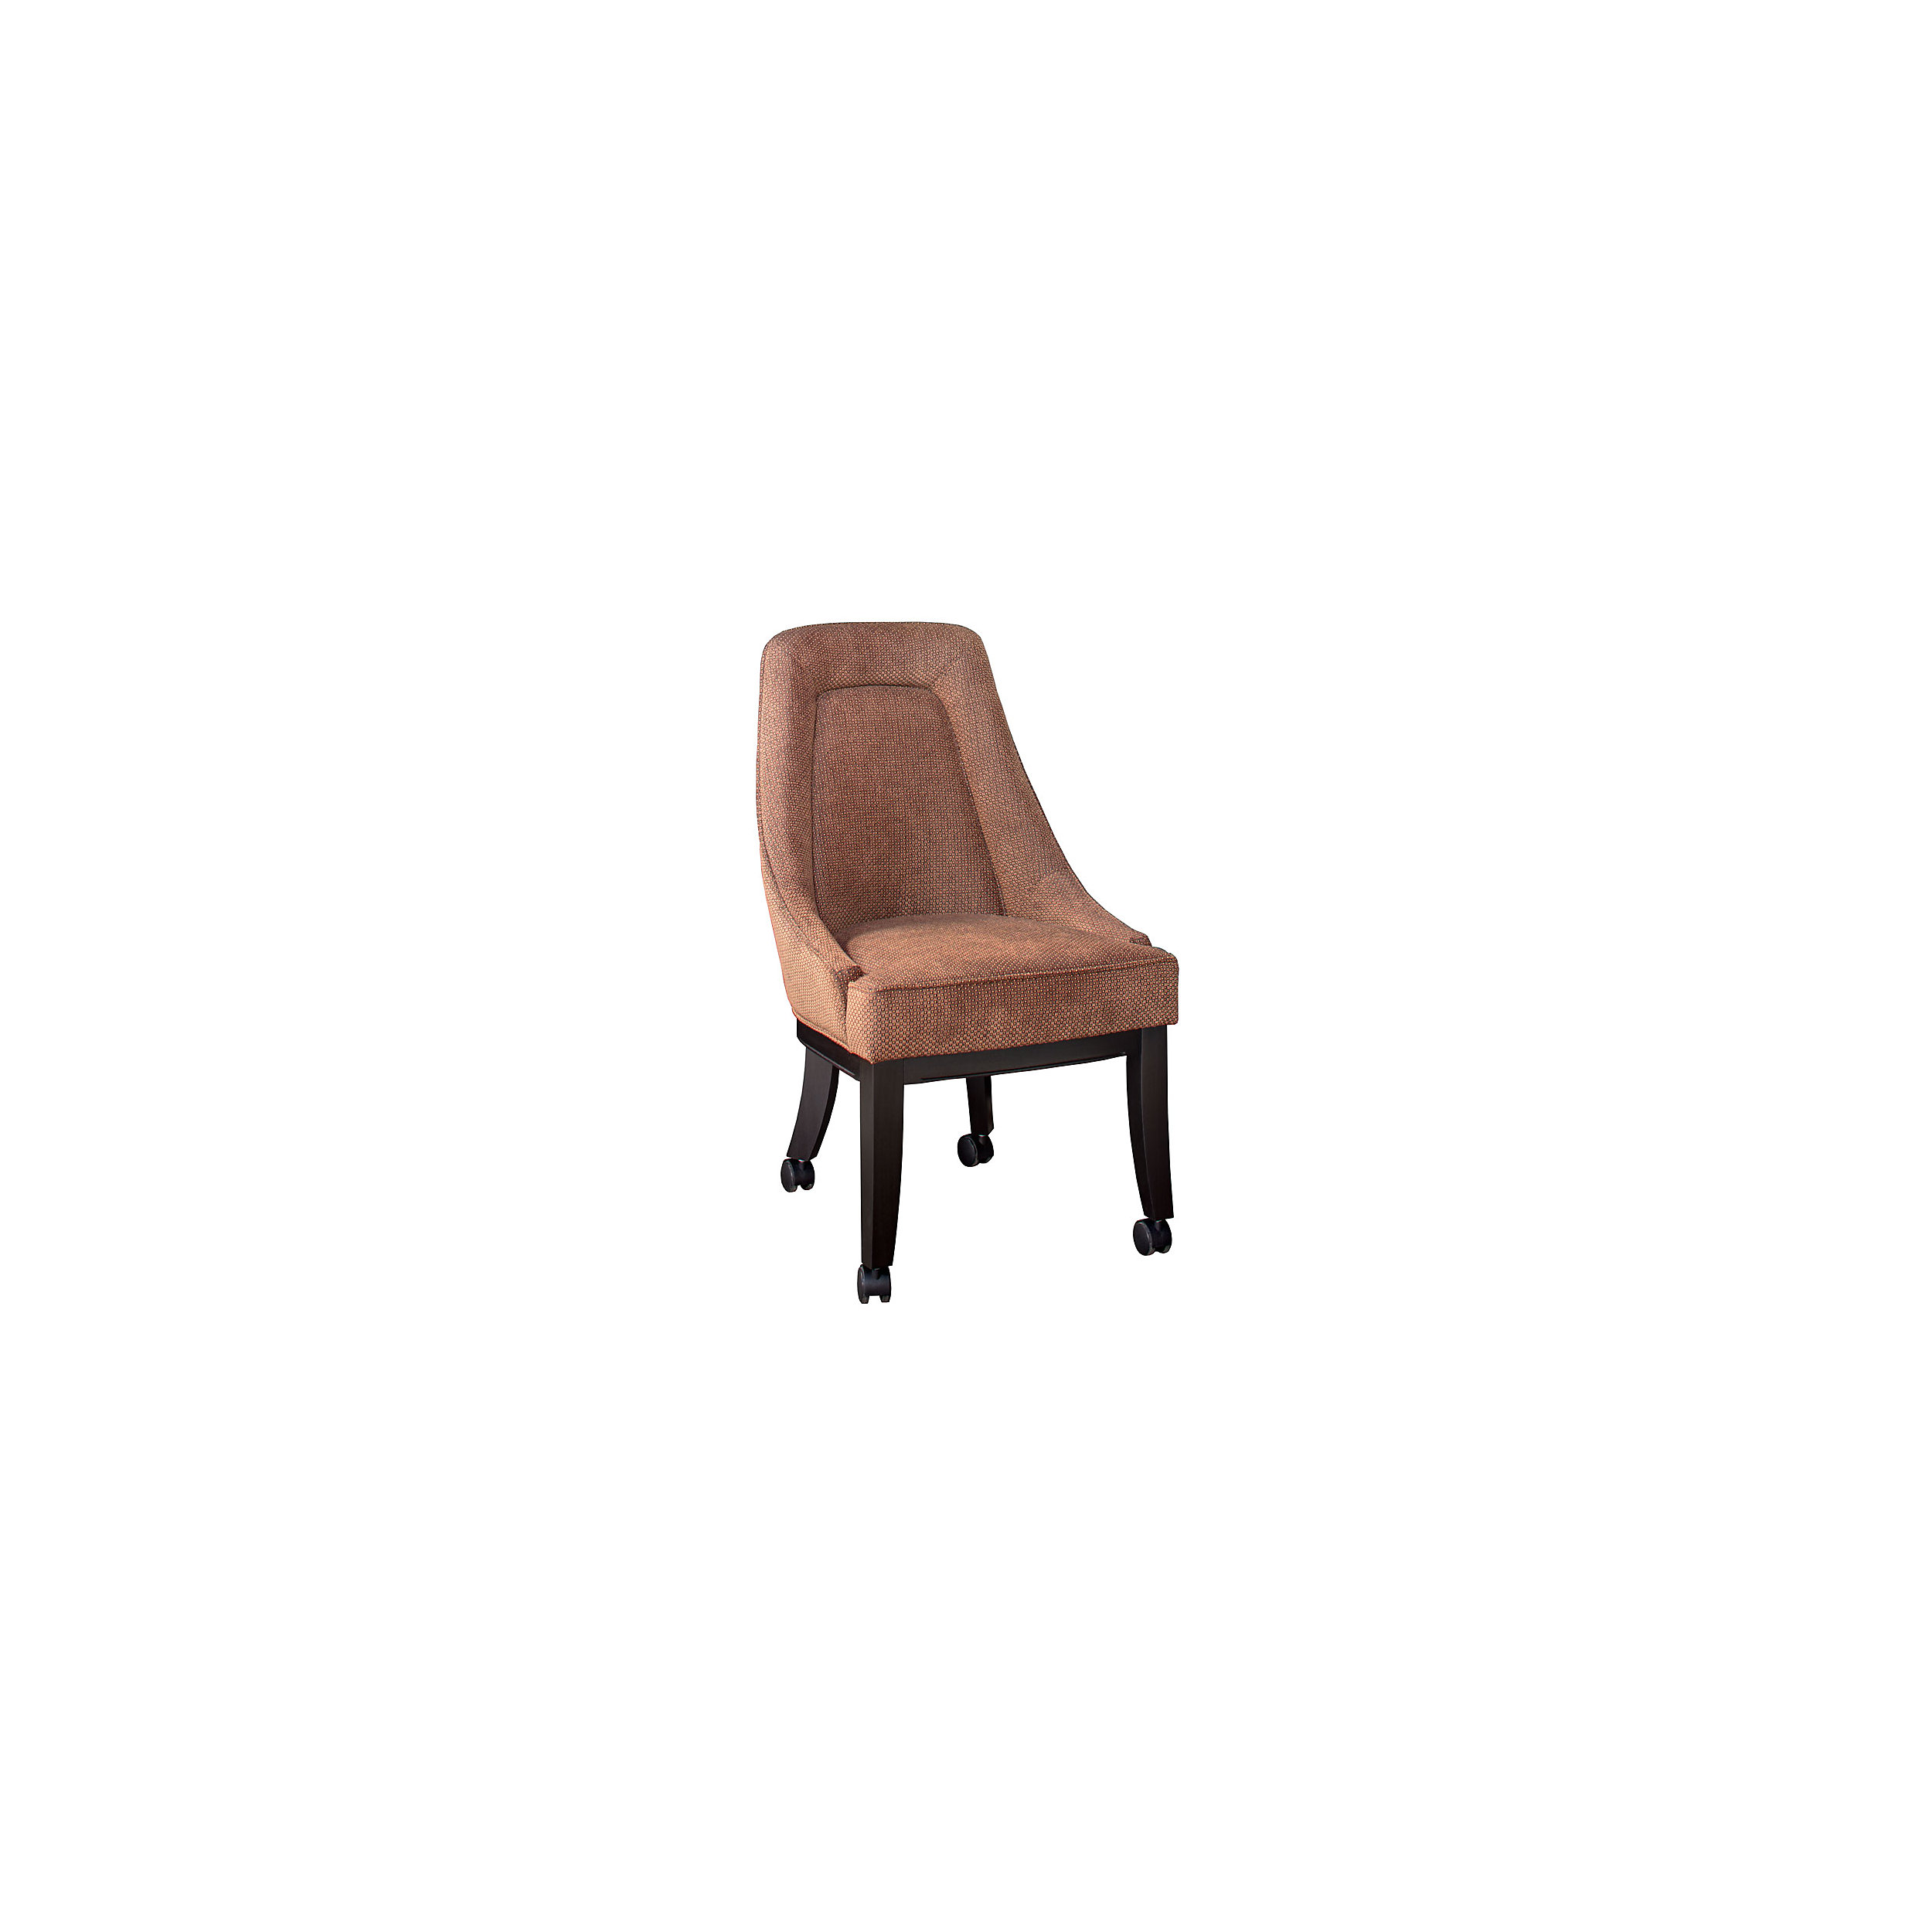 Poker Chairs with Casters Poker Chair